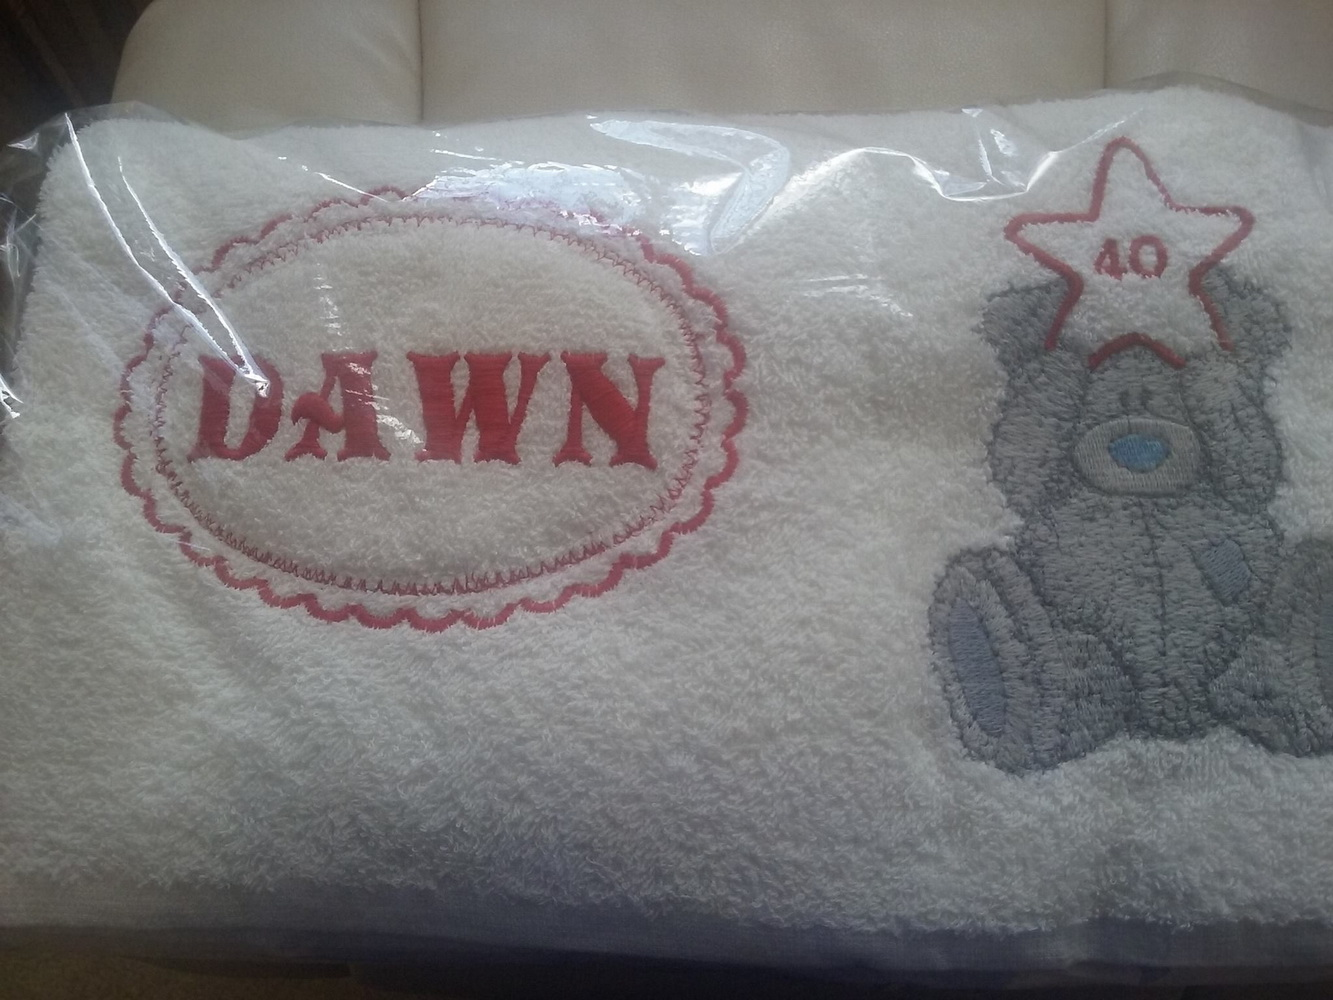 White towel embroidered with blue nose bear design